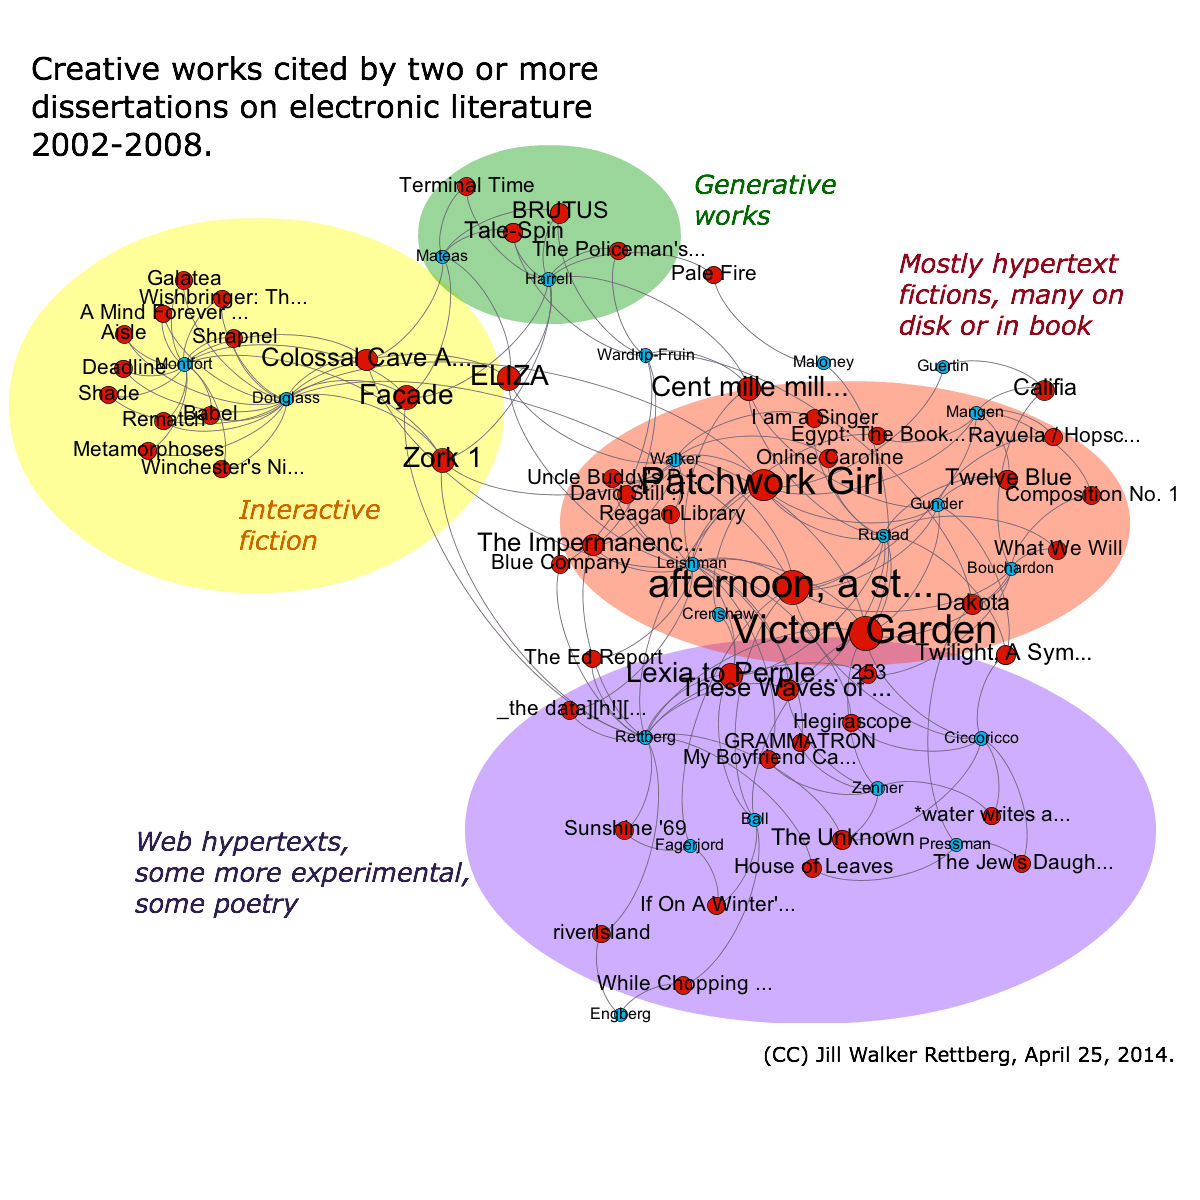 Network graph showing creative works cited by two or more dissertations on electronic literature between 2002 and 2008.